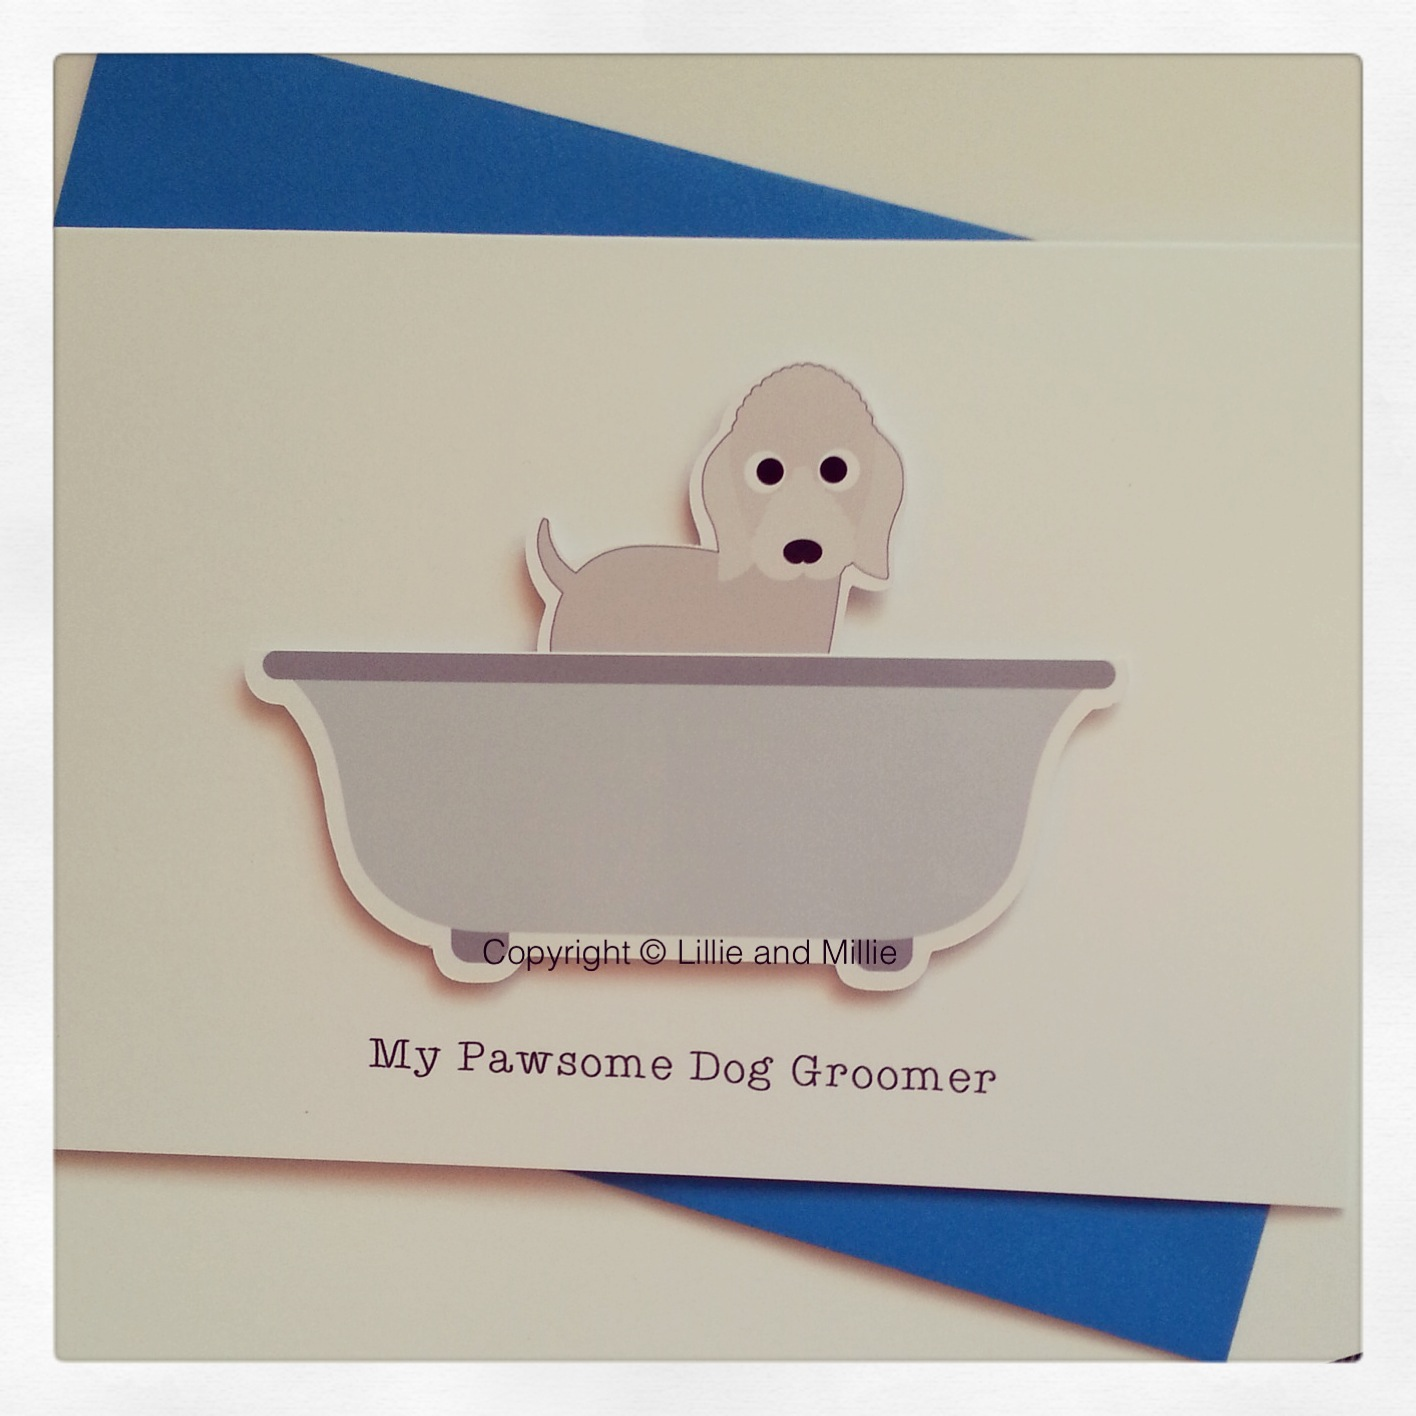 Cute and Cuddly Bedlington Terrier Dog Groomer Card